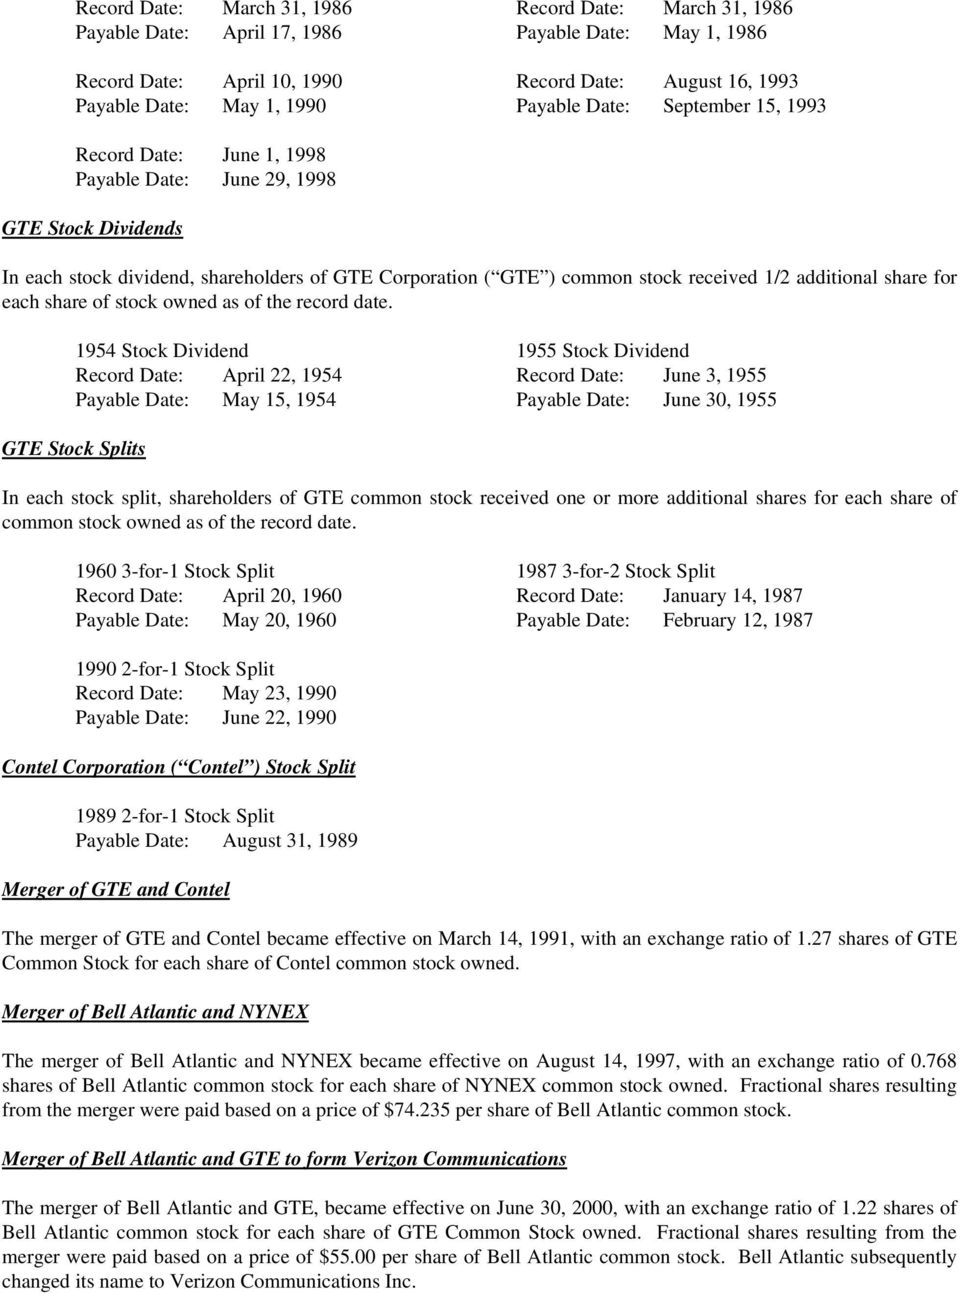 worksheet At&t Cost Basis Worksheet determining your tax basis in shares of verizon communications inc additional share for each stock owned as the record date